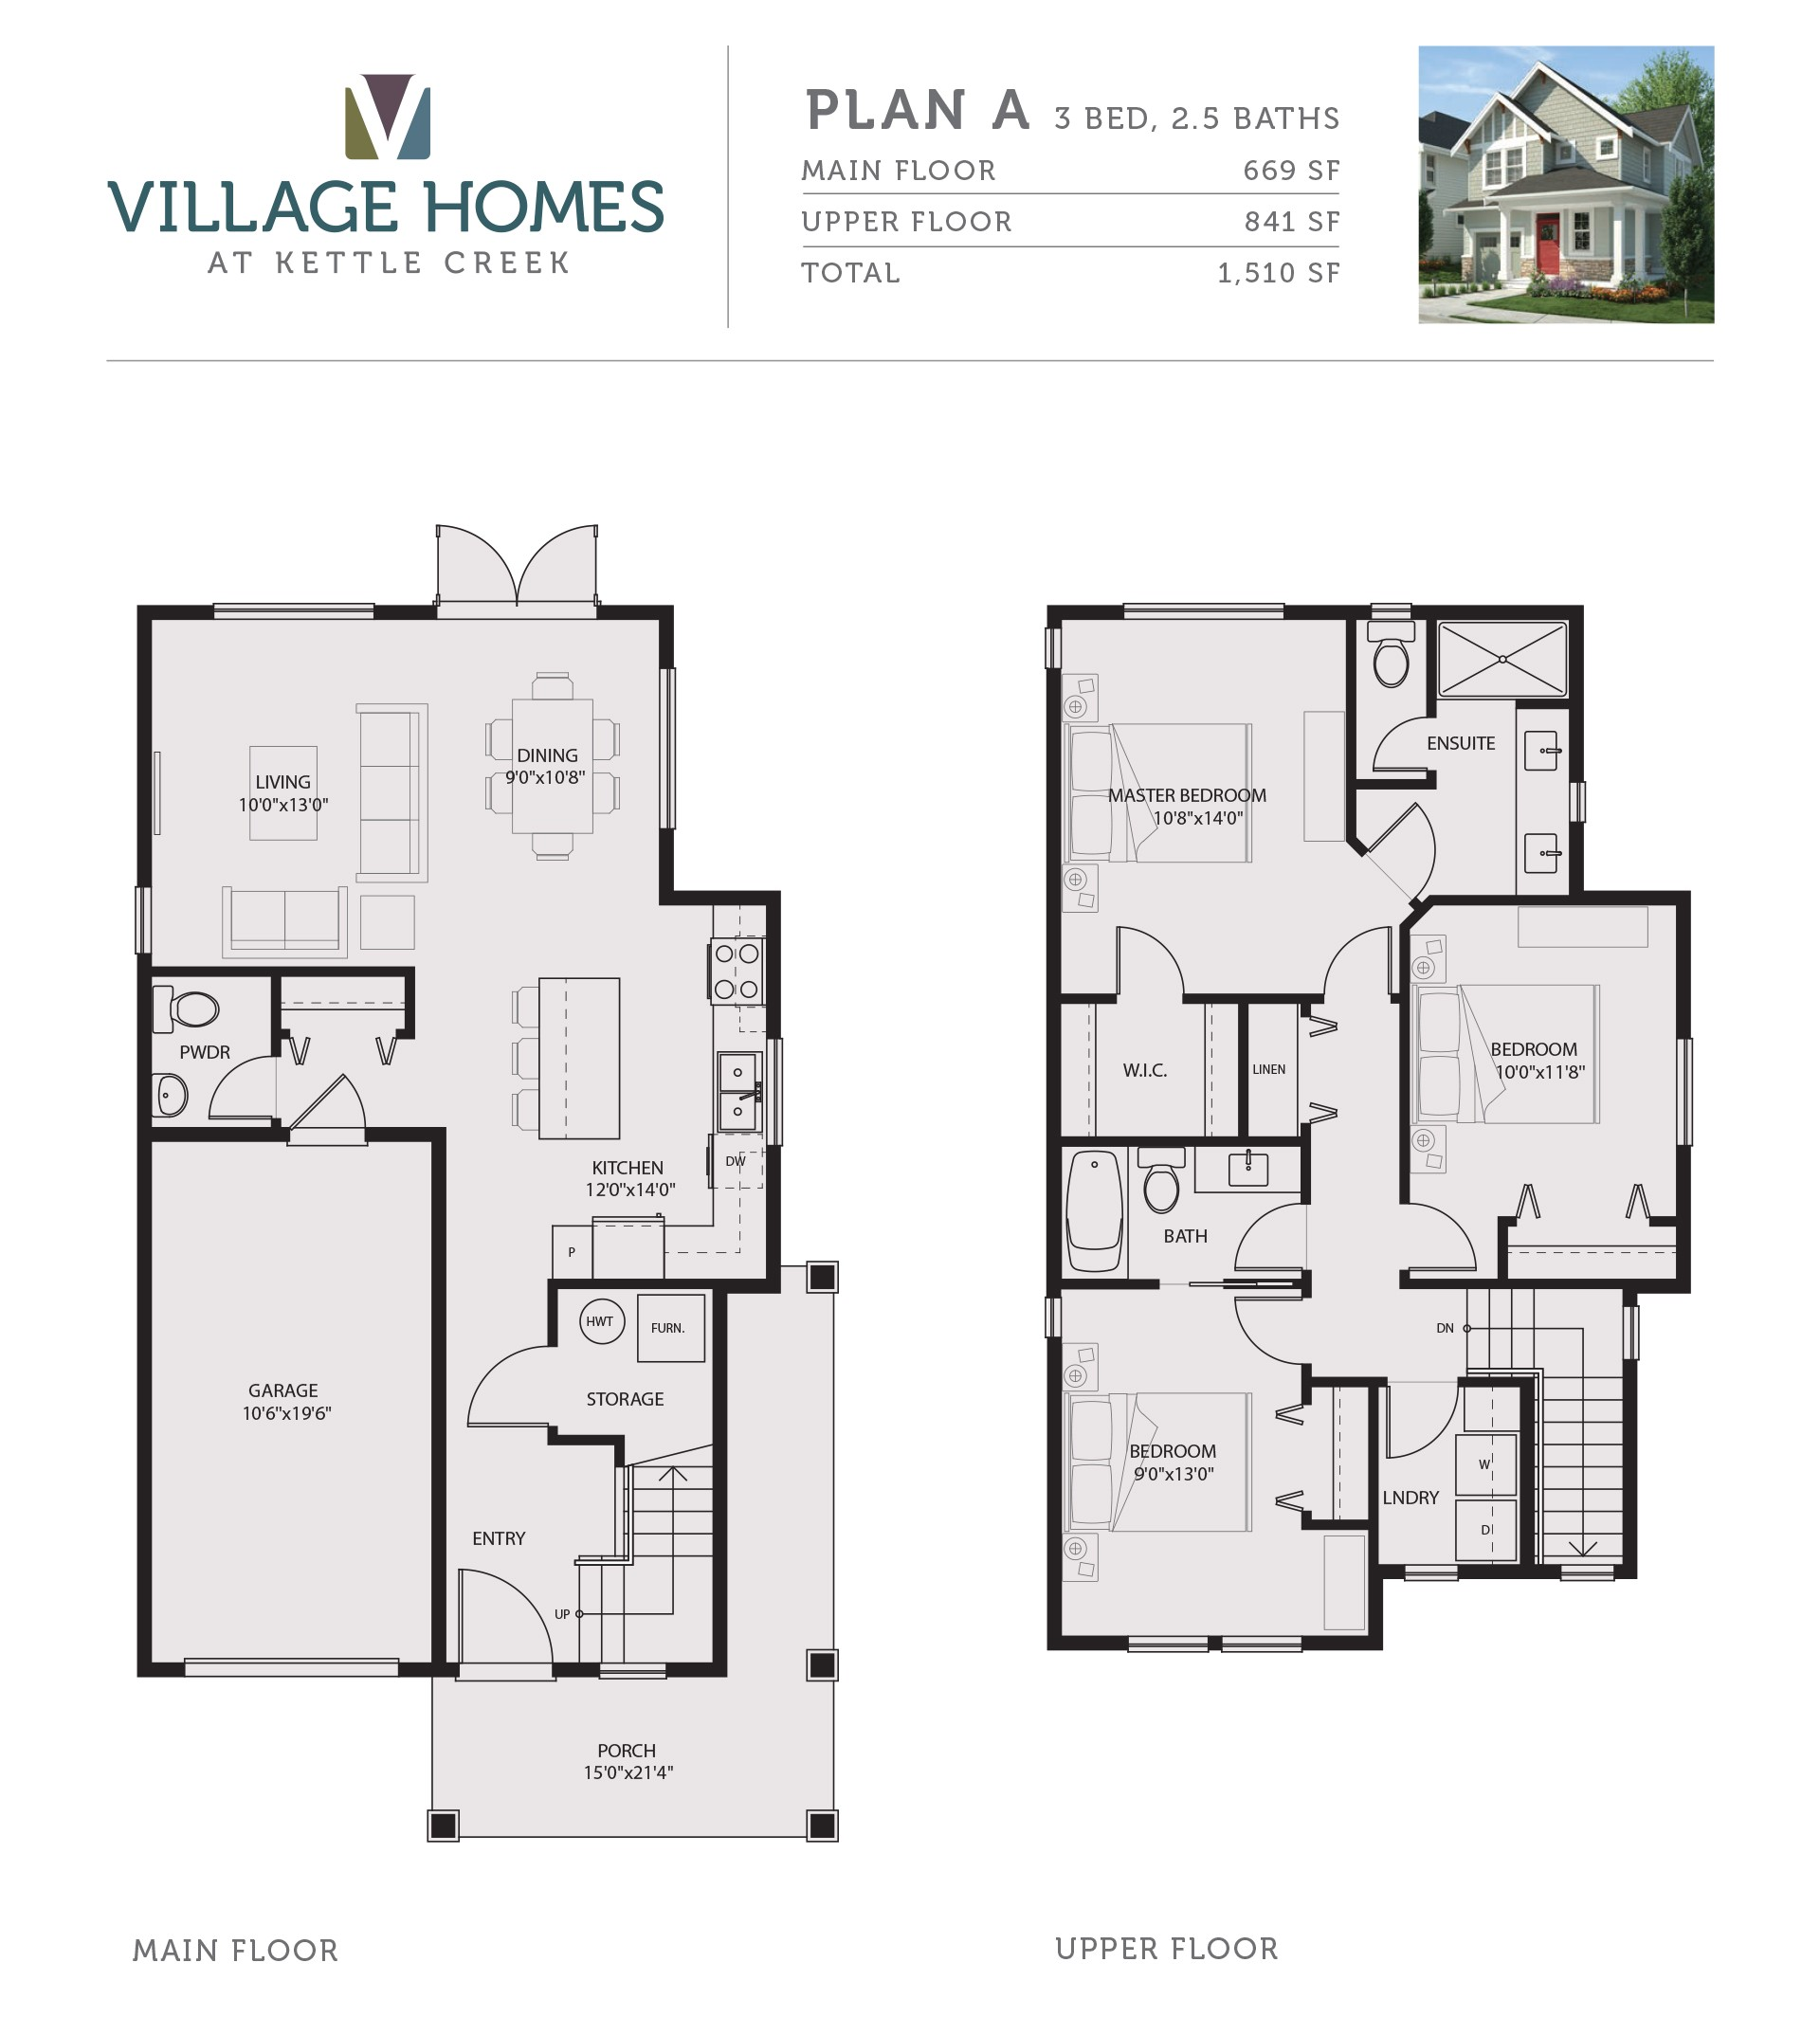 Village Home Plan 4 Floor Plans Starting 379k From Village Homes Langford